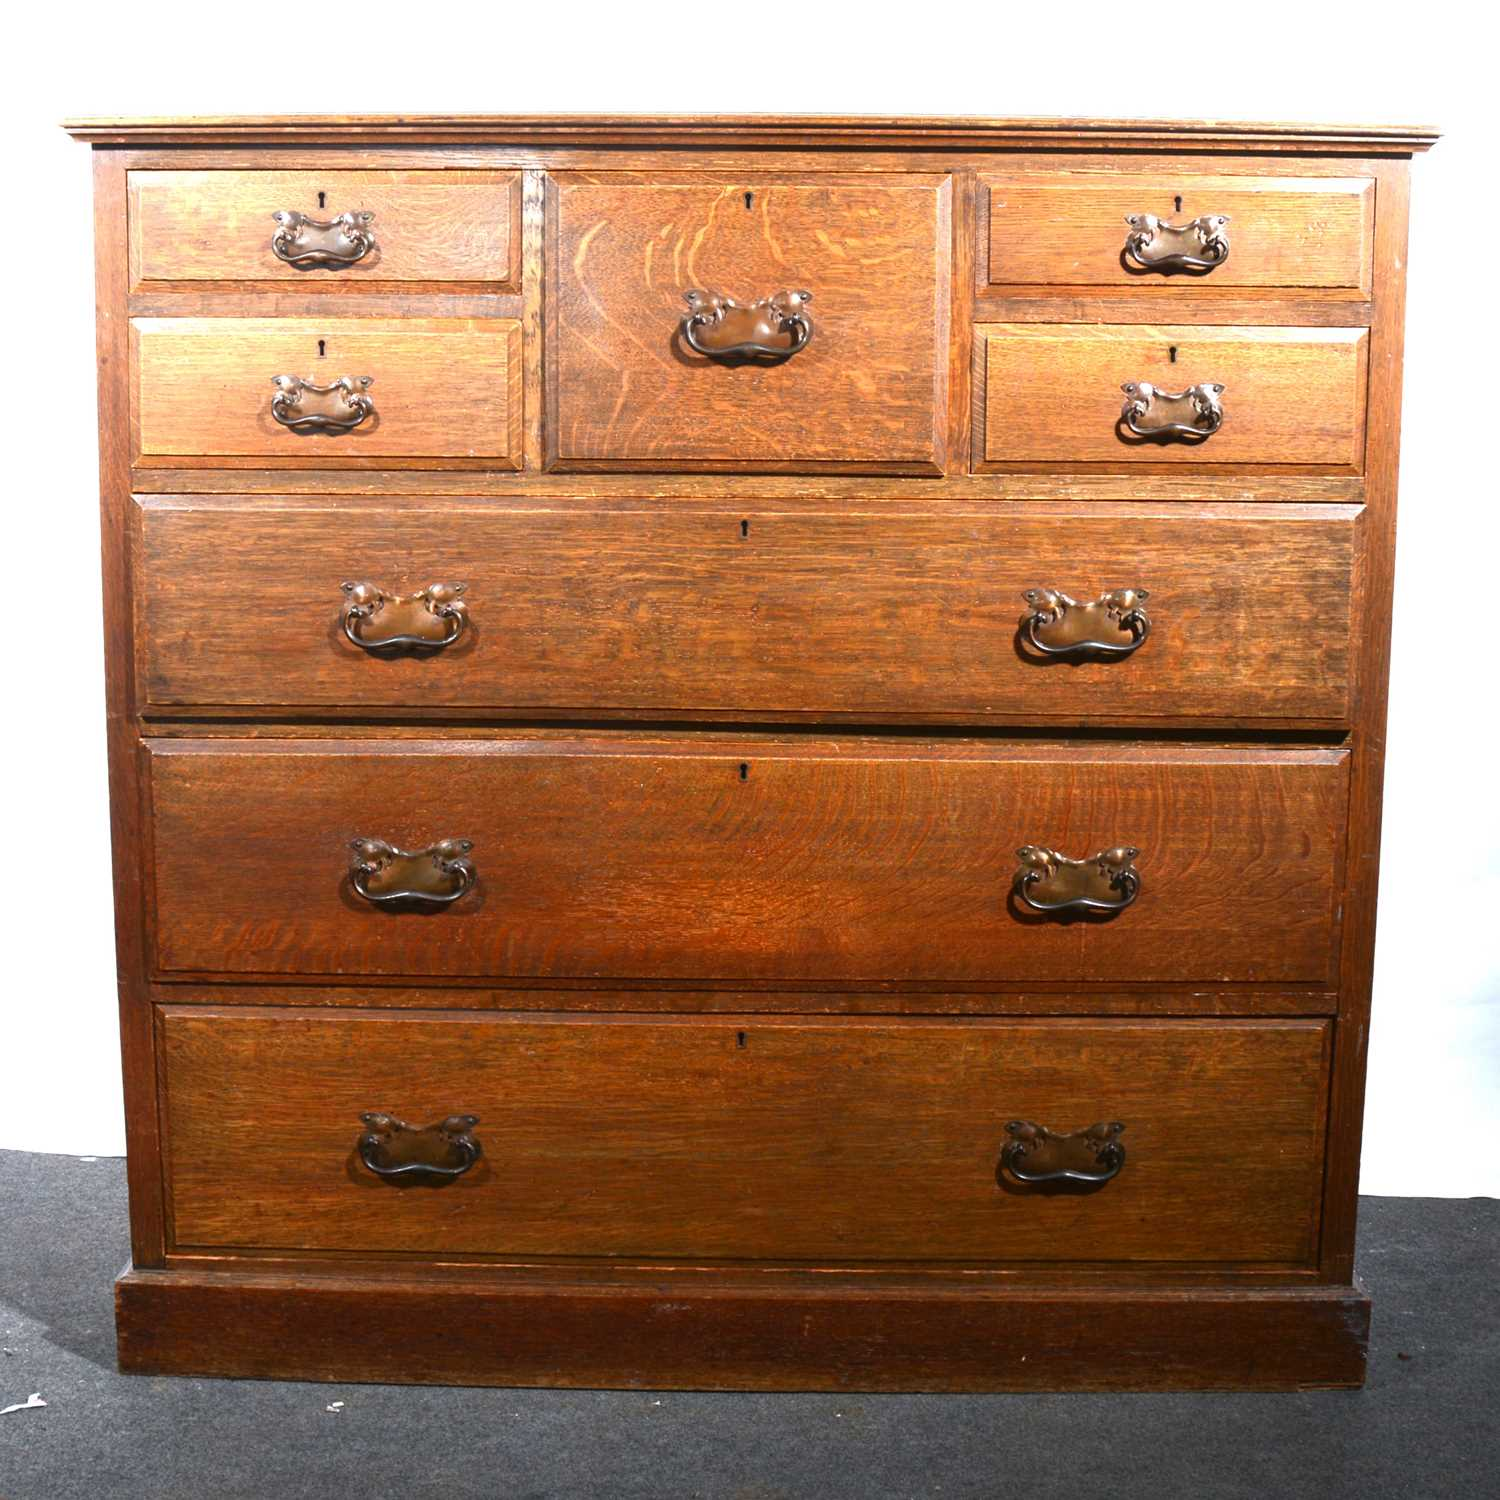 Lot 17 - An Edwardian oak chest of drawers.